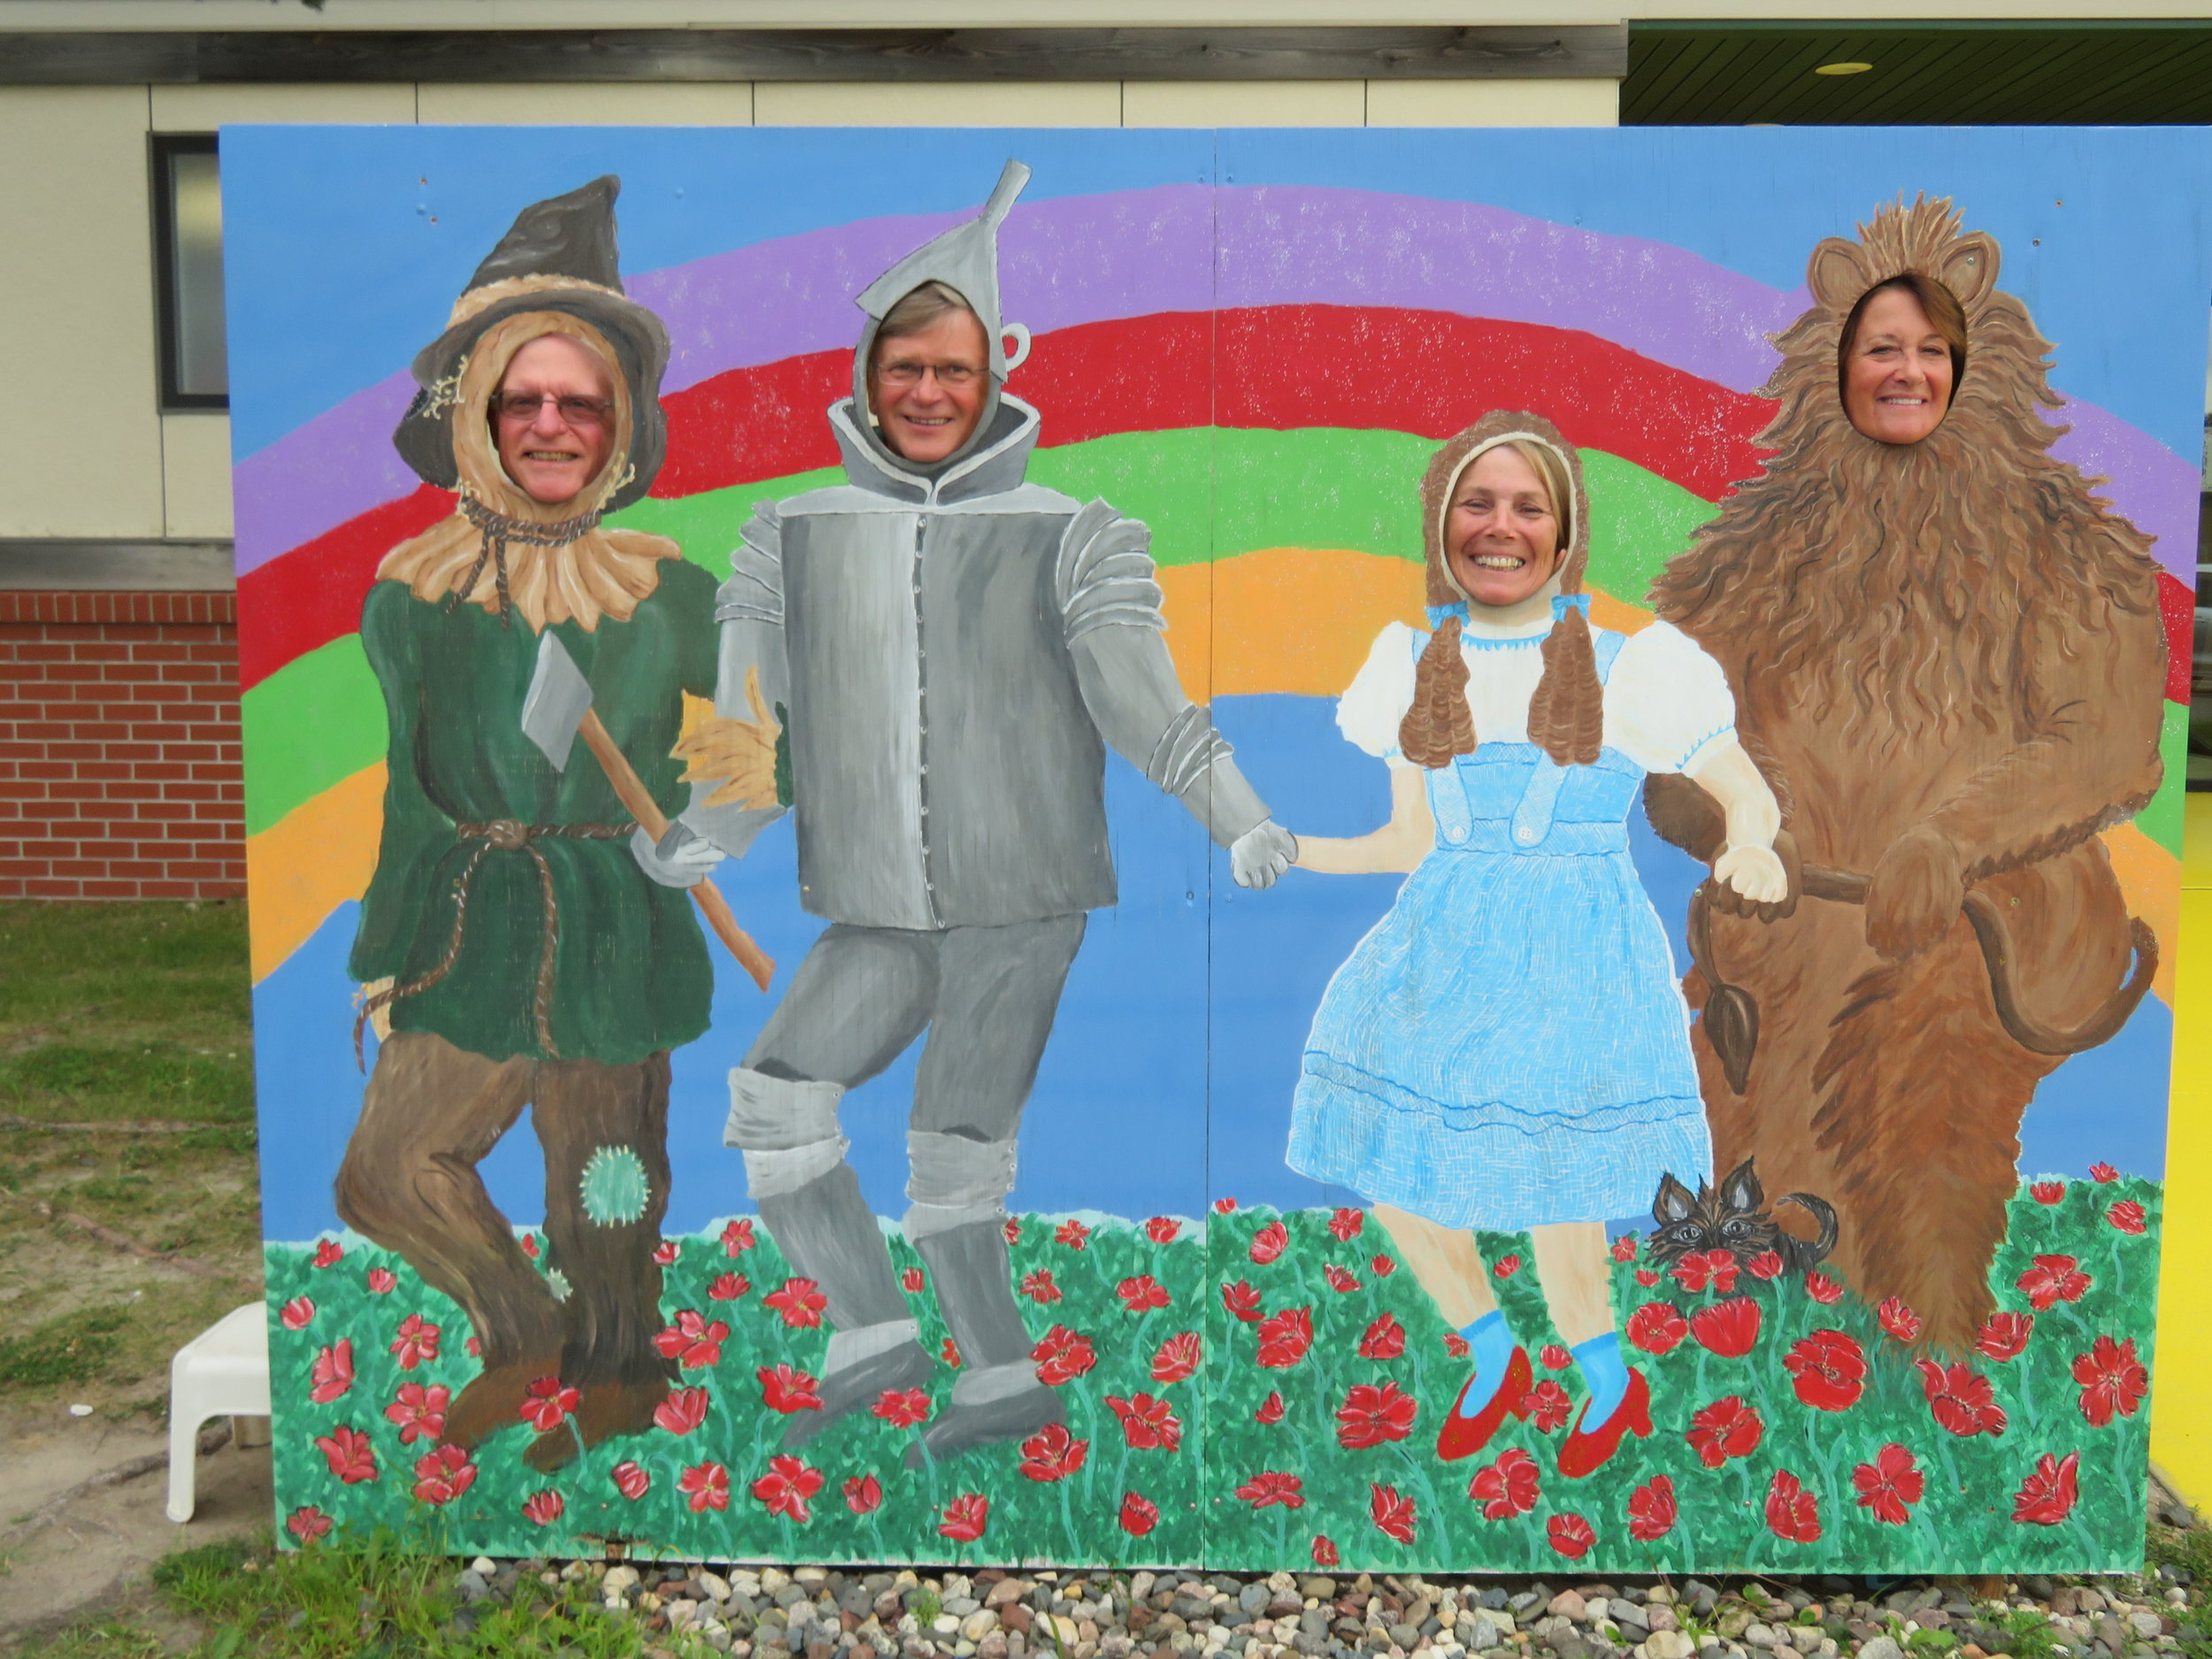 David as Scarecrow, Steve as Tin Man, Marcie as Dorothy and Diane as the Cowardly Lion.